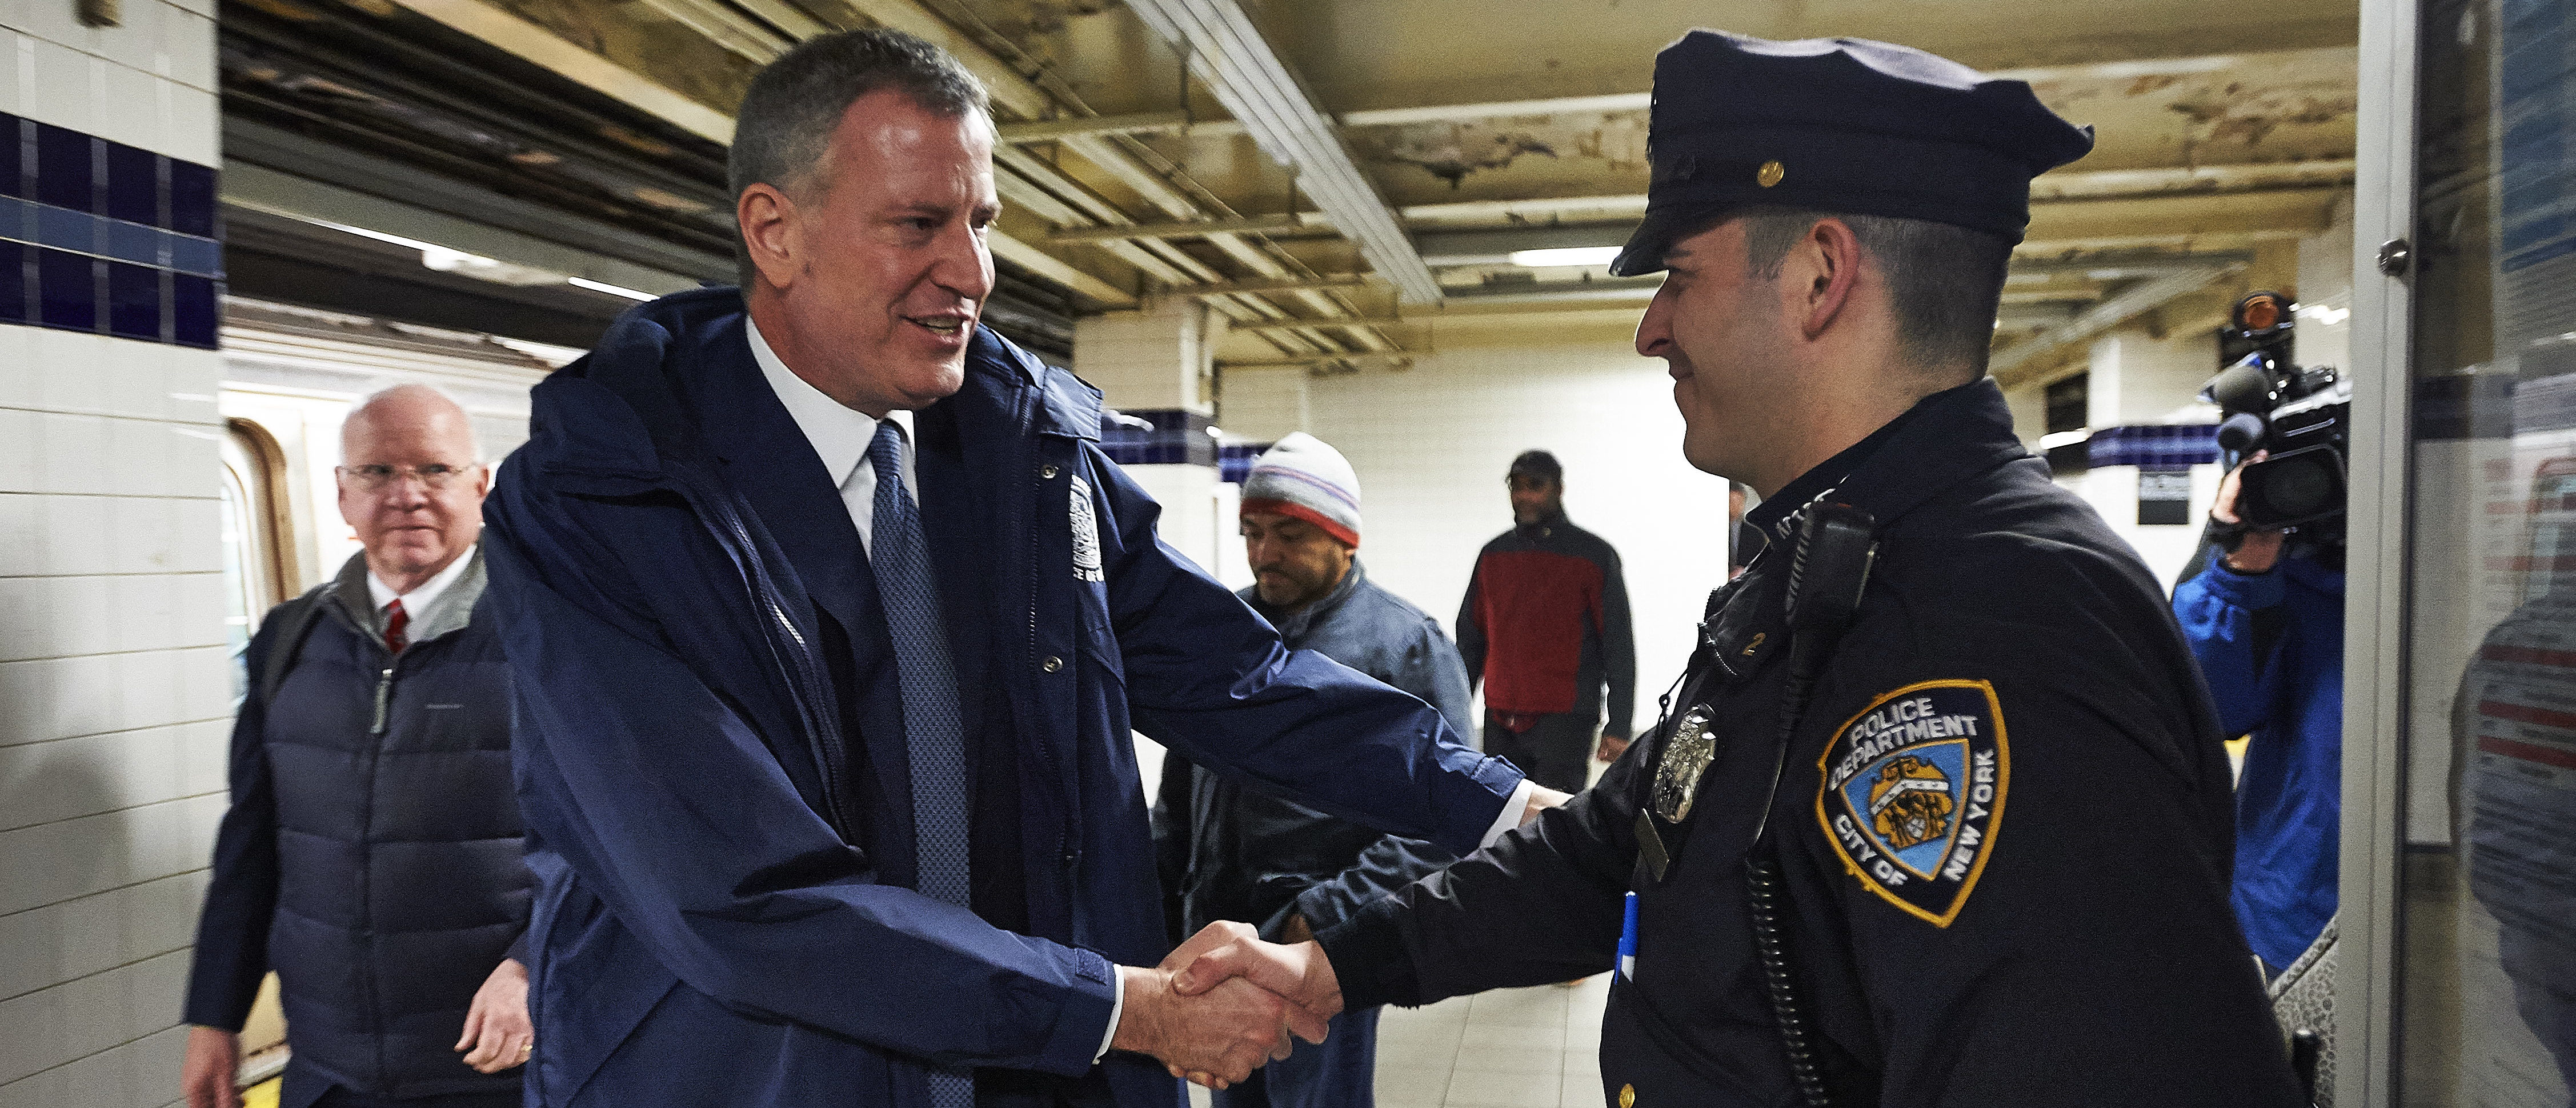 NEW YORK, NY - MARCH 3: New York City Mayor Bill de Blasio, left, greets a New York Police Department officer after a trip on the New York City Subway A train on March 2, 2016 in New York City. The Mayor rode the subway from City Hall to a news conference in Brooklyn. (Photo by James Keivom-Pool/Getty Images)